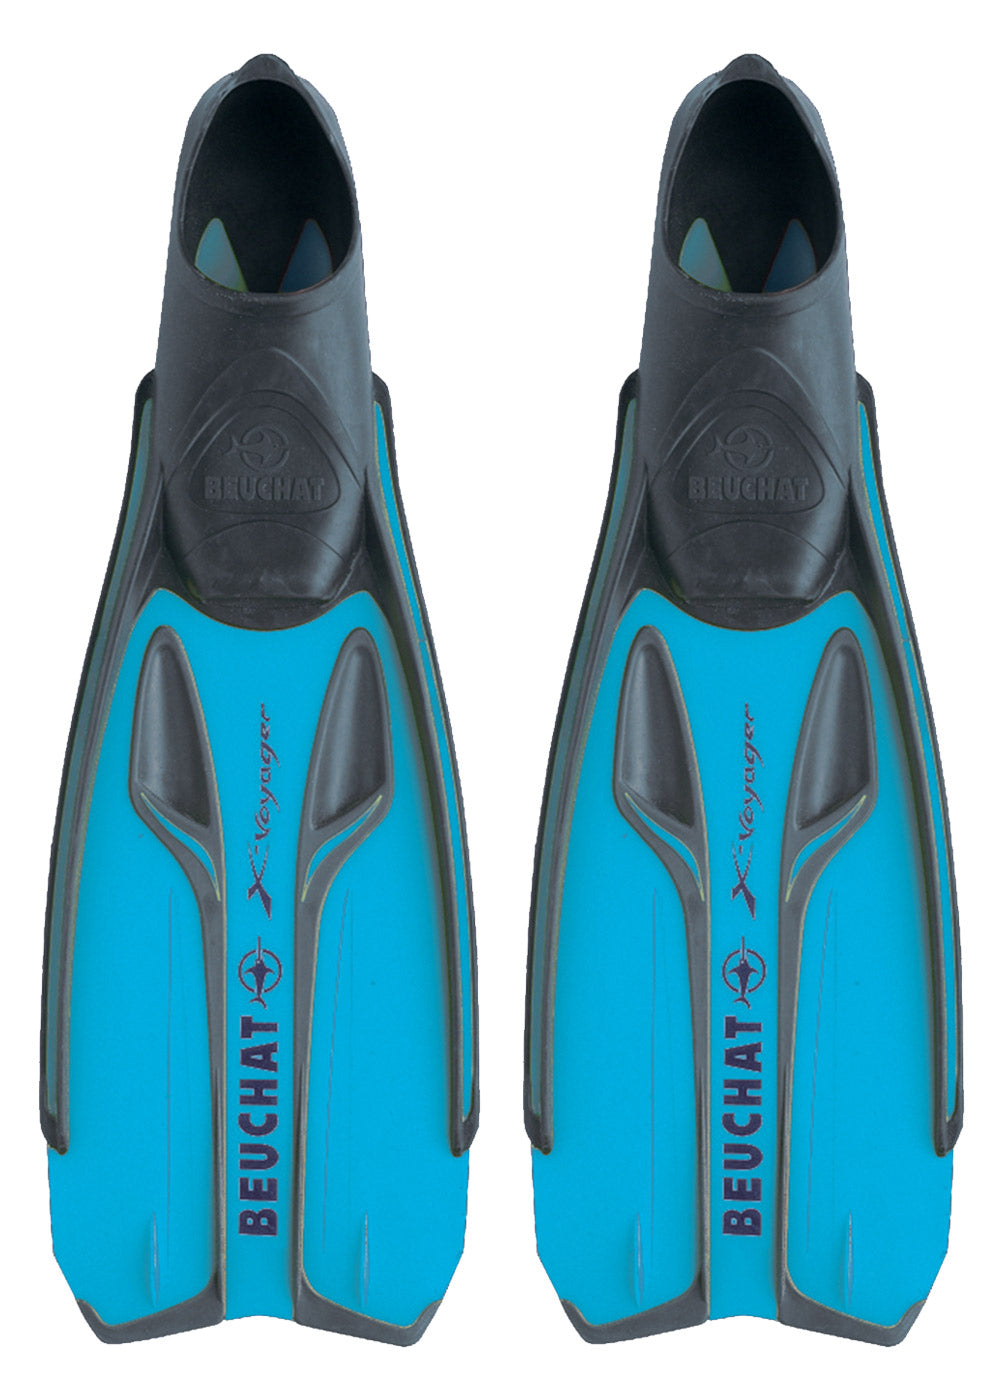 Beuchat X-Voyager Full Foot Fin